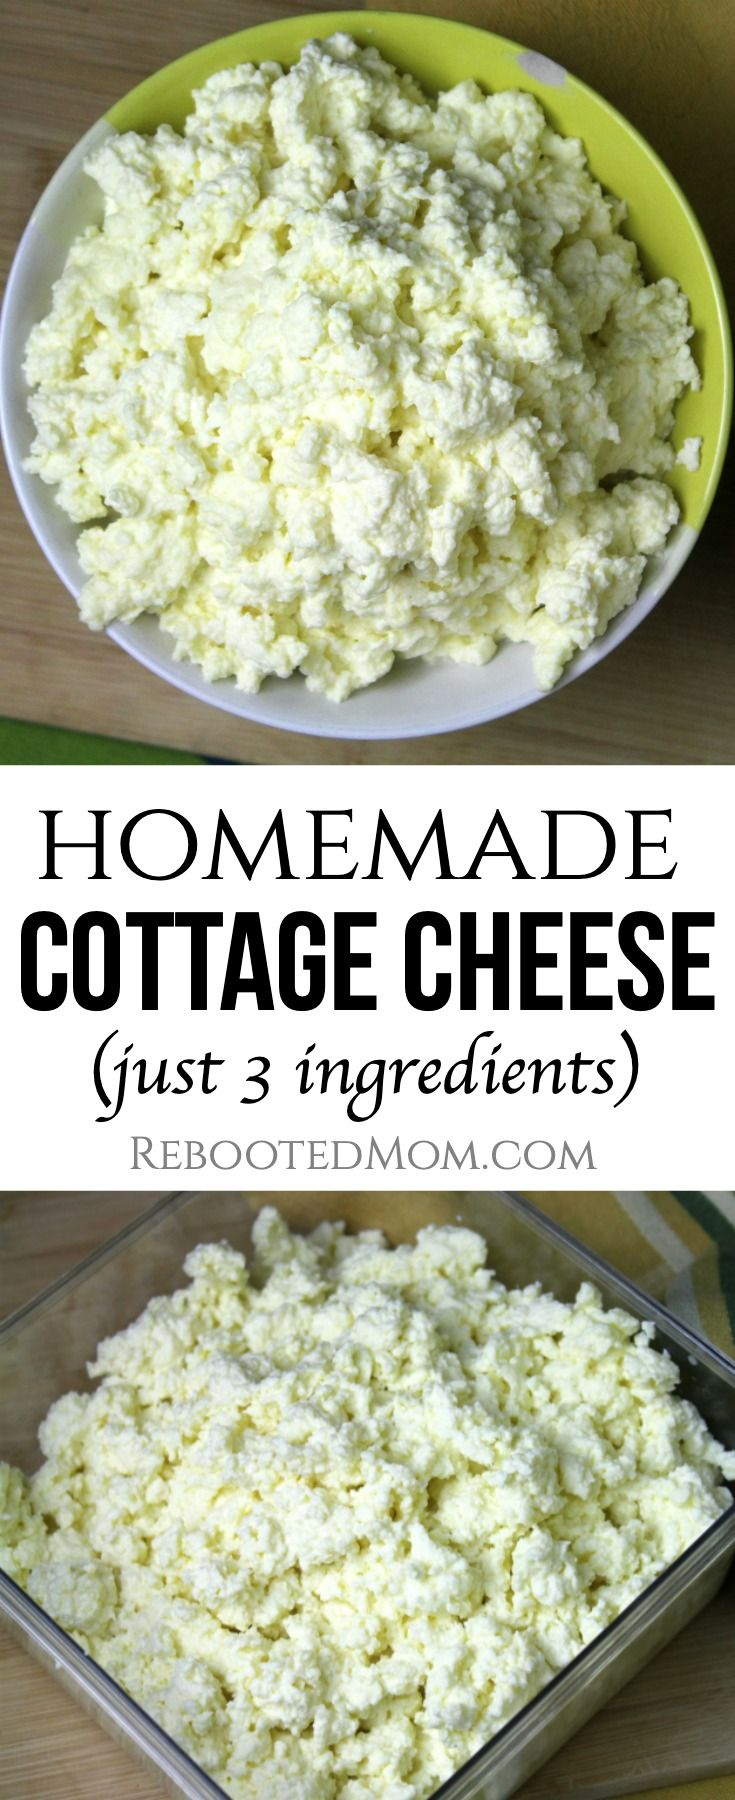 An Absolutely Delicious Recipe For Homemade Cottage Cheese That S Simple To Make At Home Wi Cottage Cheese Recipes Homemade Cottage Cheese Vegan Cottage Cheese